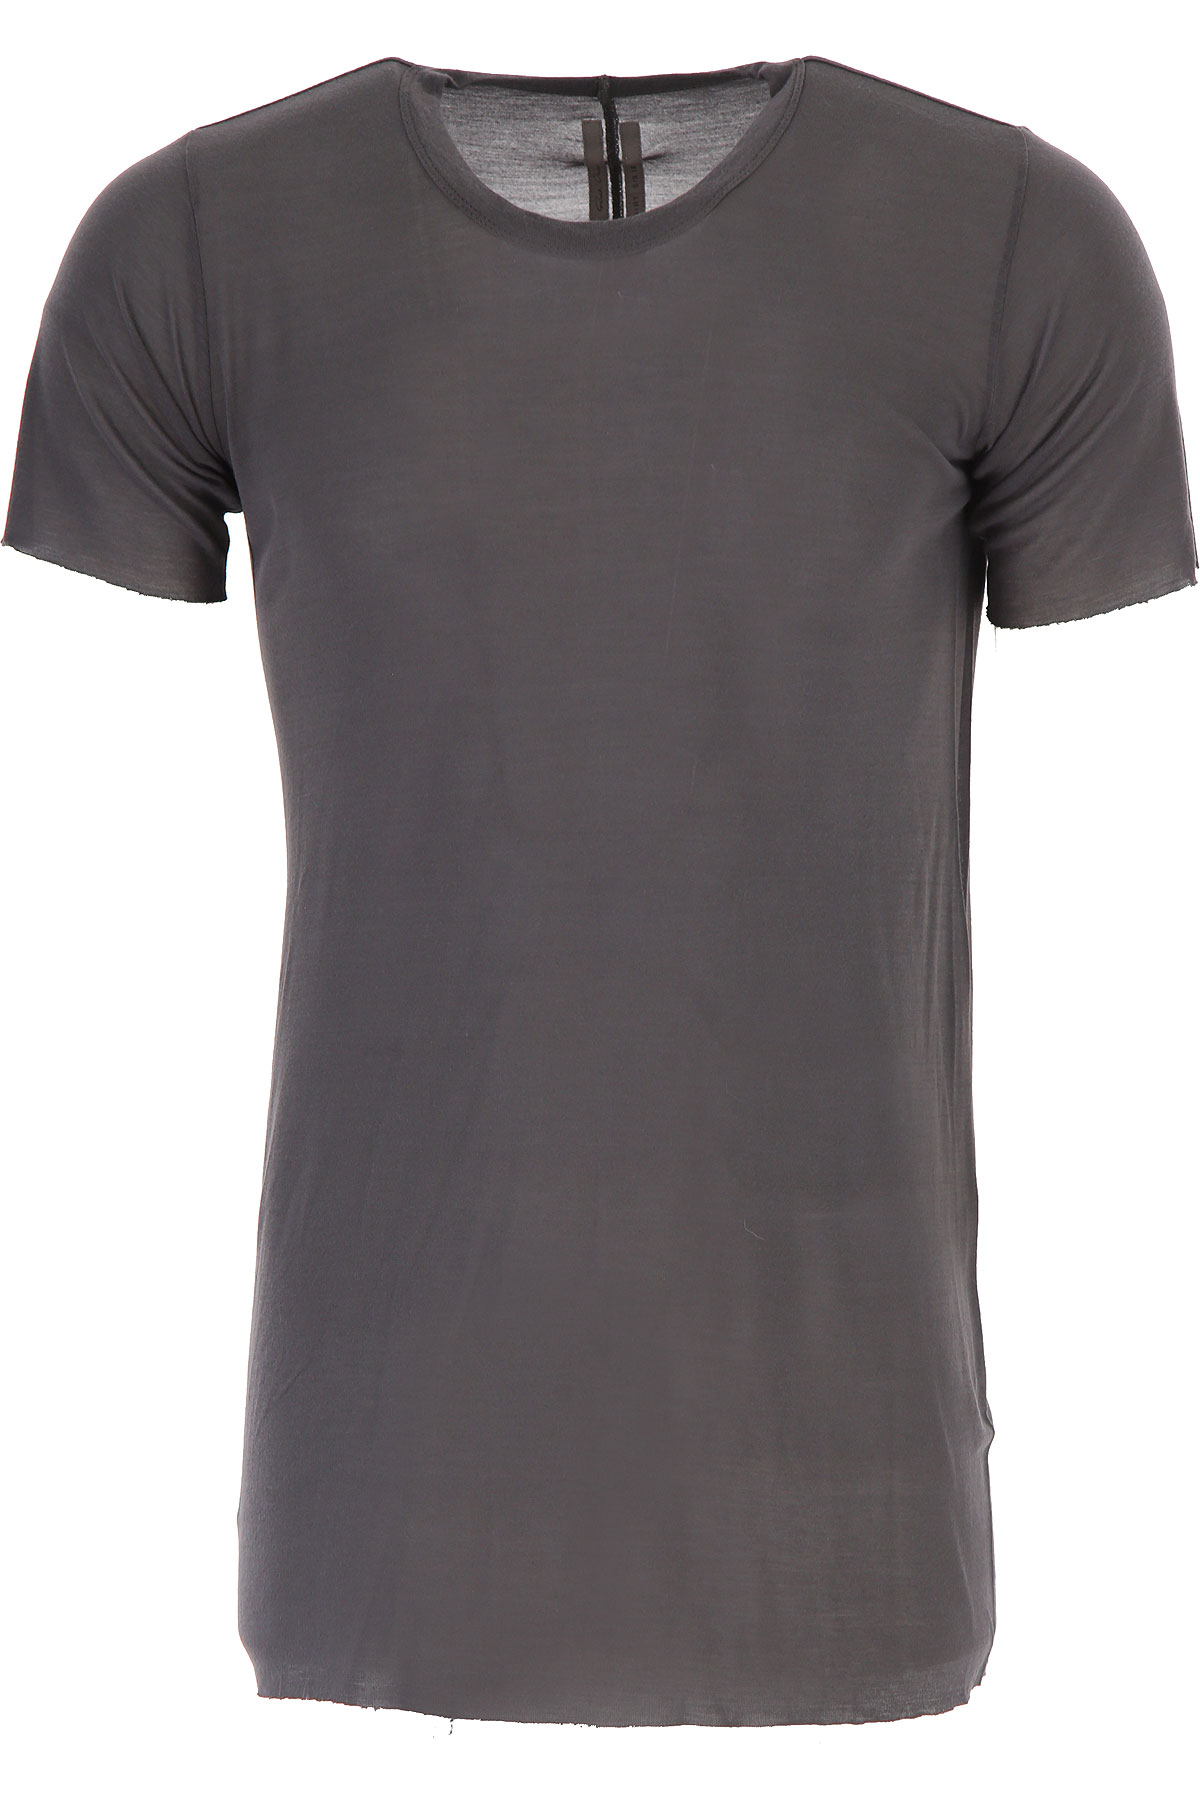 Rick Owens T-Shirt for Men On Sale in Outlet, Grey, viscosa, 2019, S XL